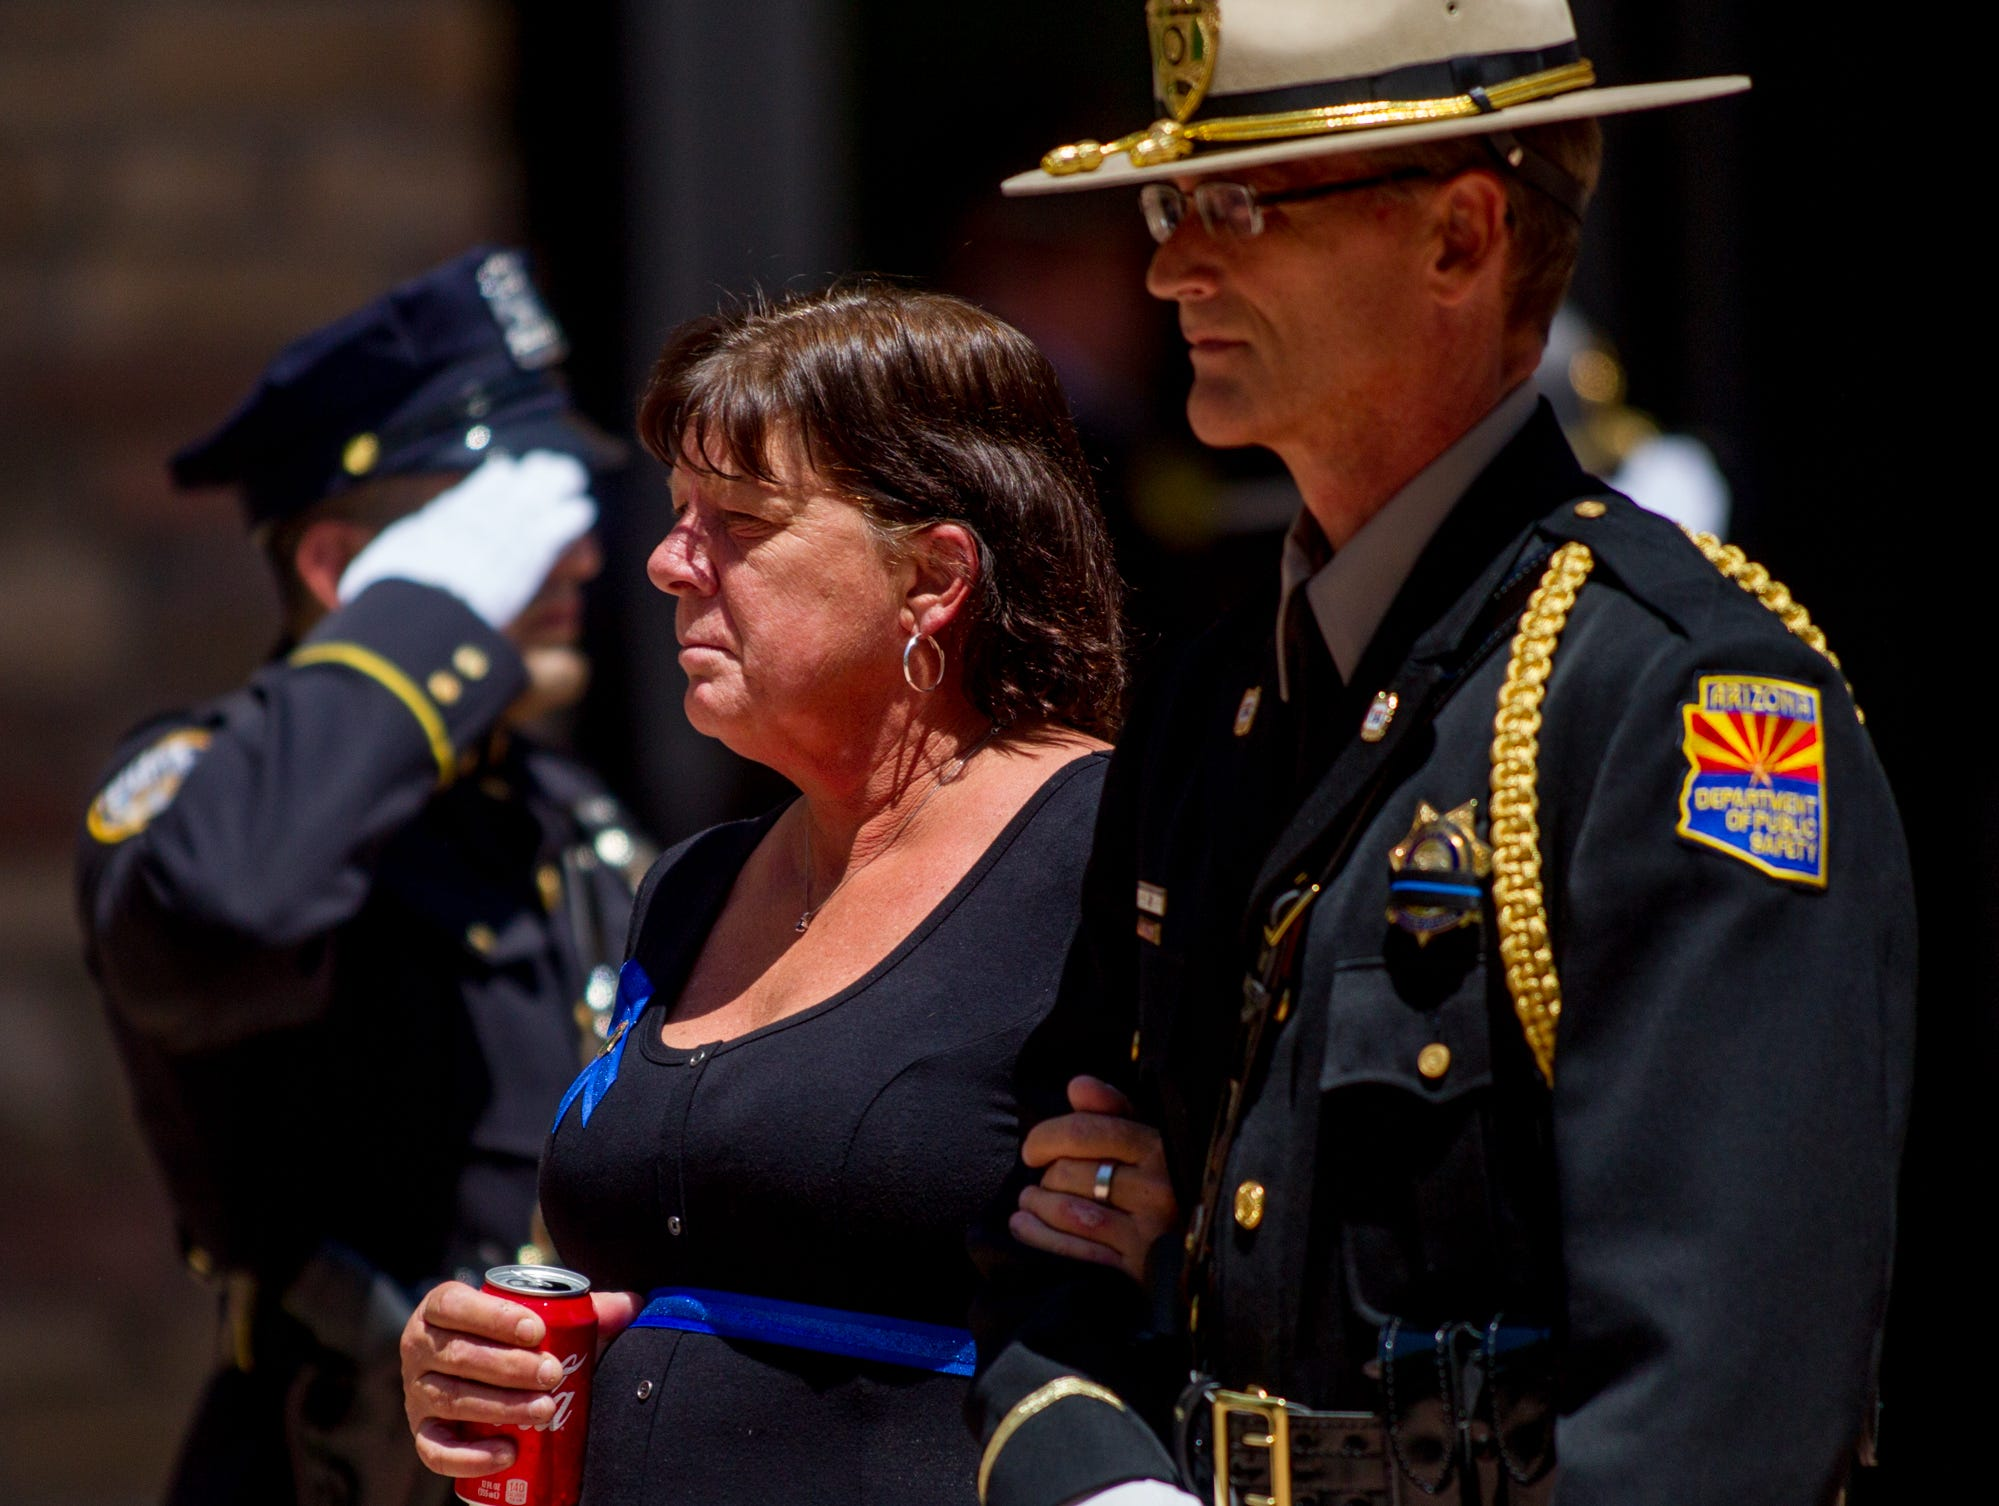 Debbie Edenhofer, mother of fallen DPS Trooper Tyler Edenhofer, walks to the outdoor portion of her son's funeral on Aug. 3, 2018, at Christ's Church of the Valley in Peoria.